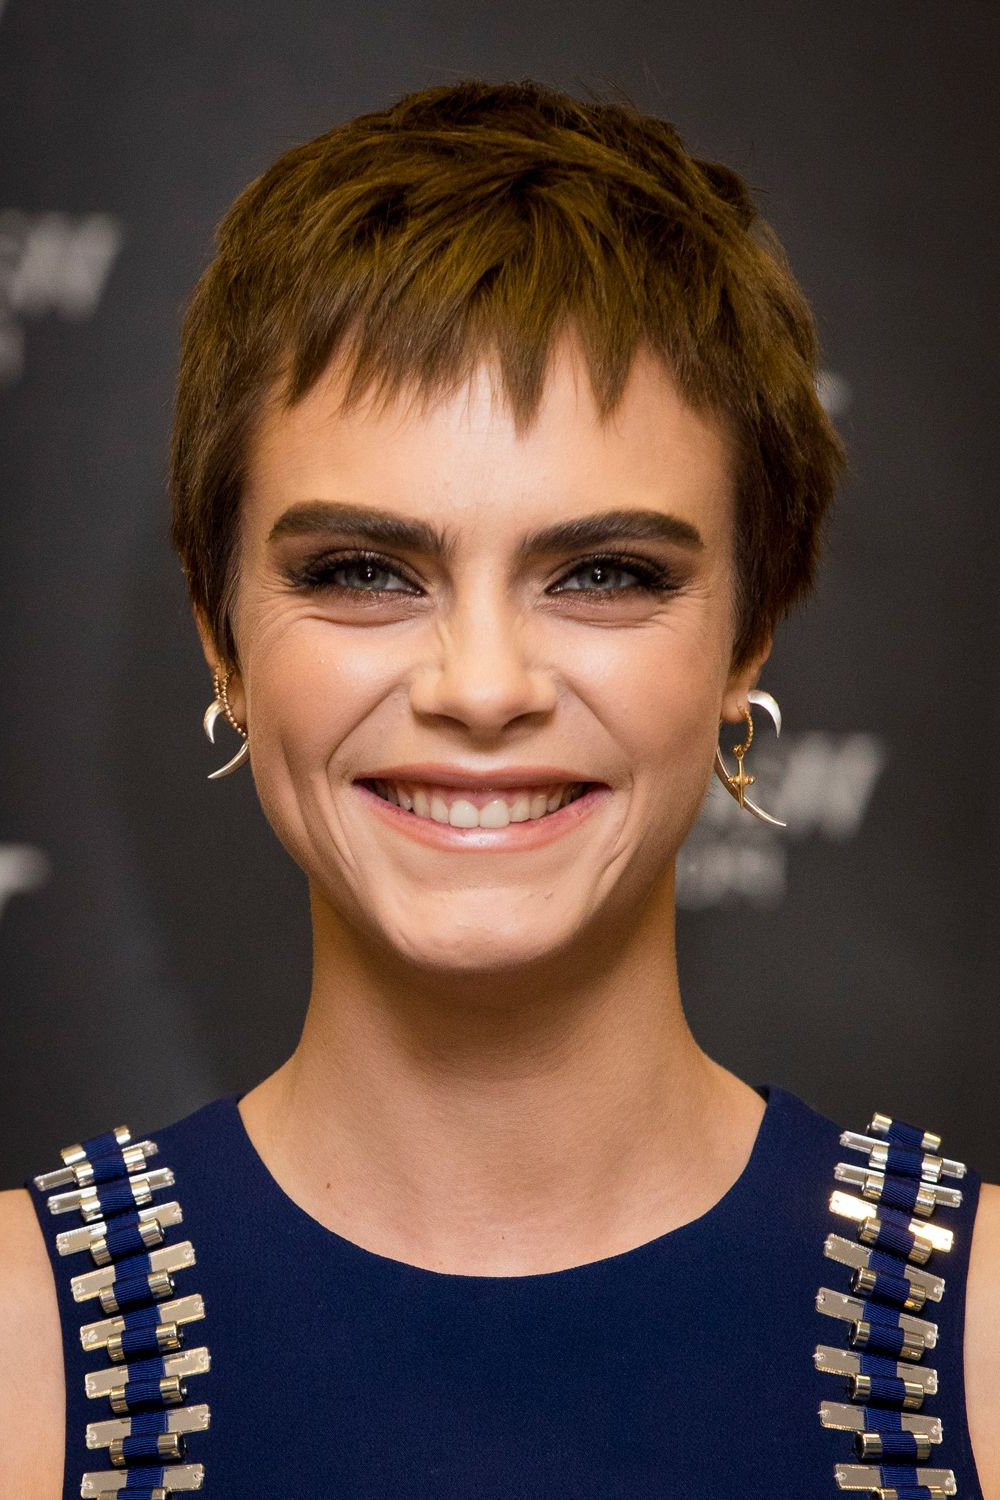 Pixie Cuts For 2018 – 34 Celebrity Hairstyle Ideas For Women Regarding Celebrities Short Haircuts (View 2 of 25)